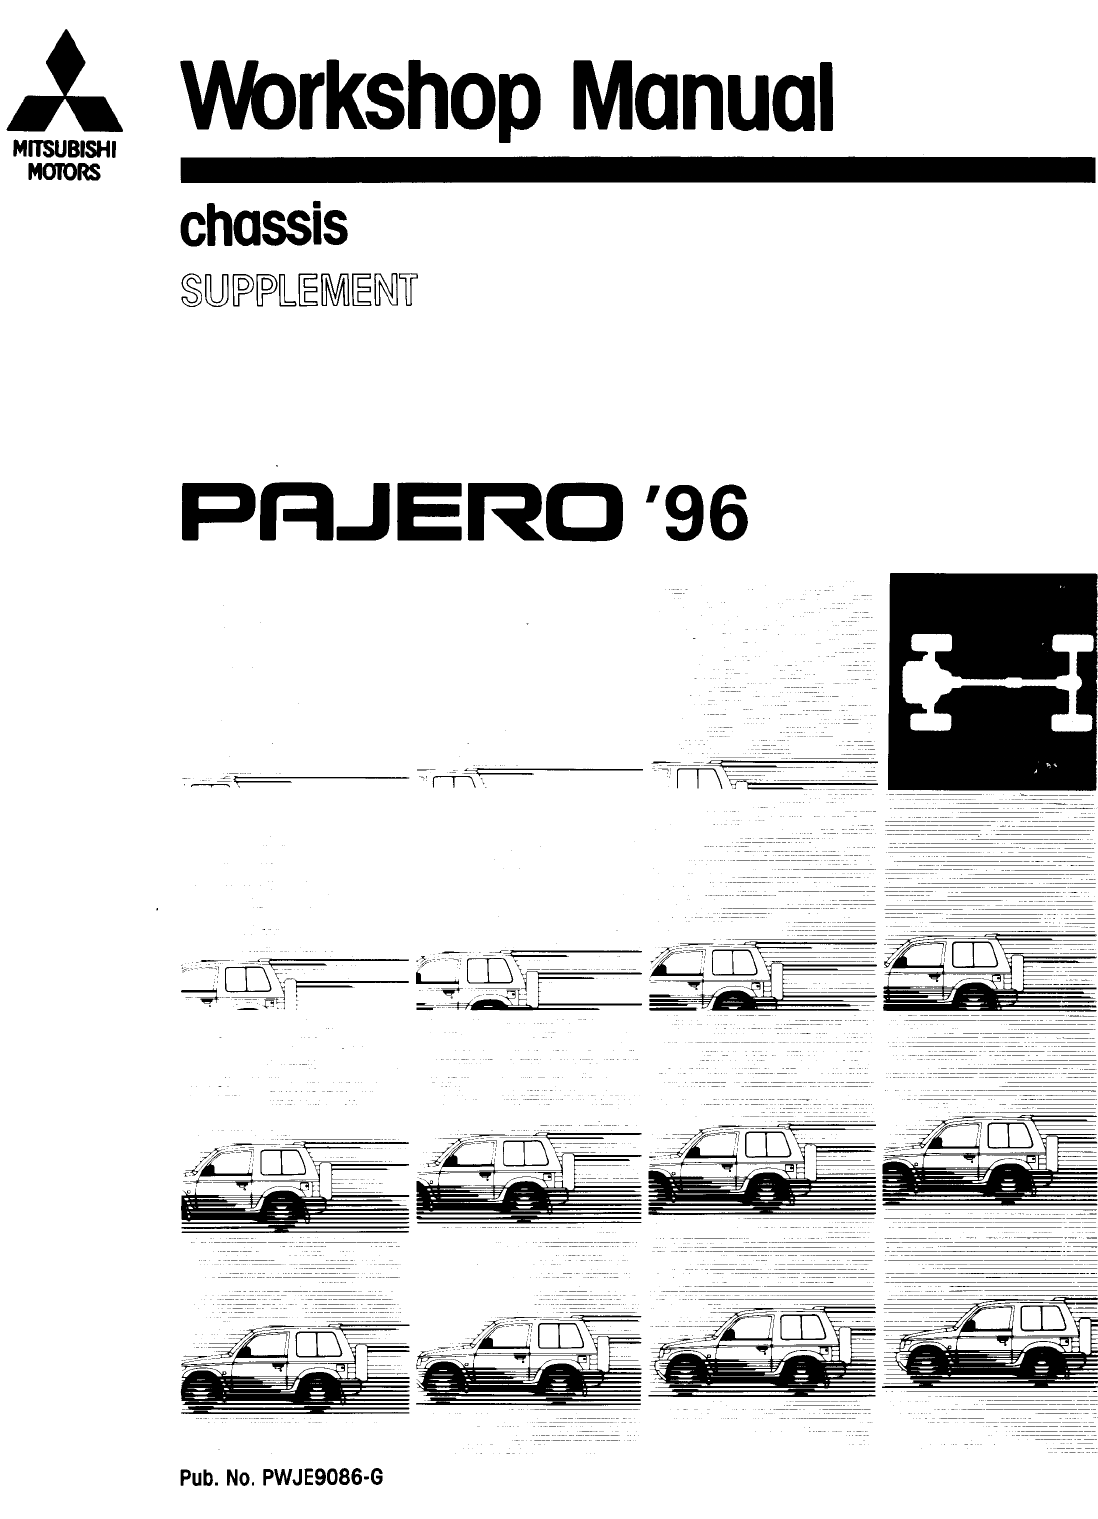 See our other Mitsubishi Pajero Manuals: Mitsubishi Pajero Workshop Manual  ...